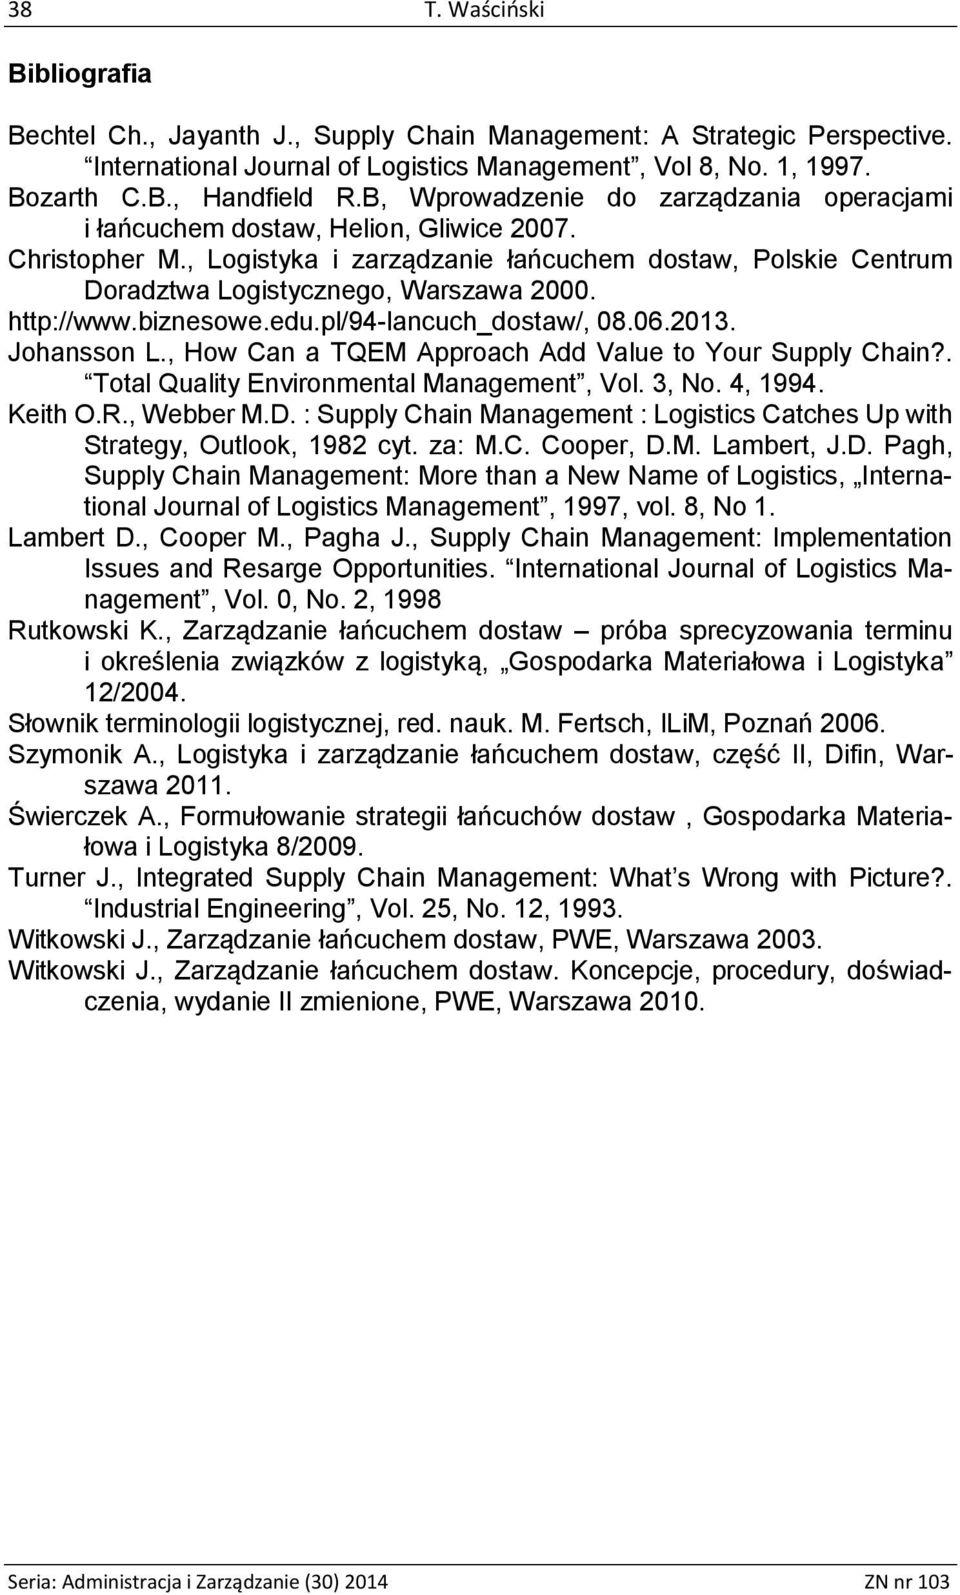 http://www.biznesowe.edu.pl/94-lancuch_dostaw/, 08.06.2013. Johansson L., How Can a TQEM Approach Add Value to Your Supply Chain?. Total Quality Environmental Management, Vol. 3, No. 4, 1994. Keith O.